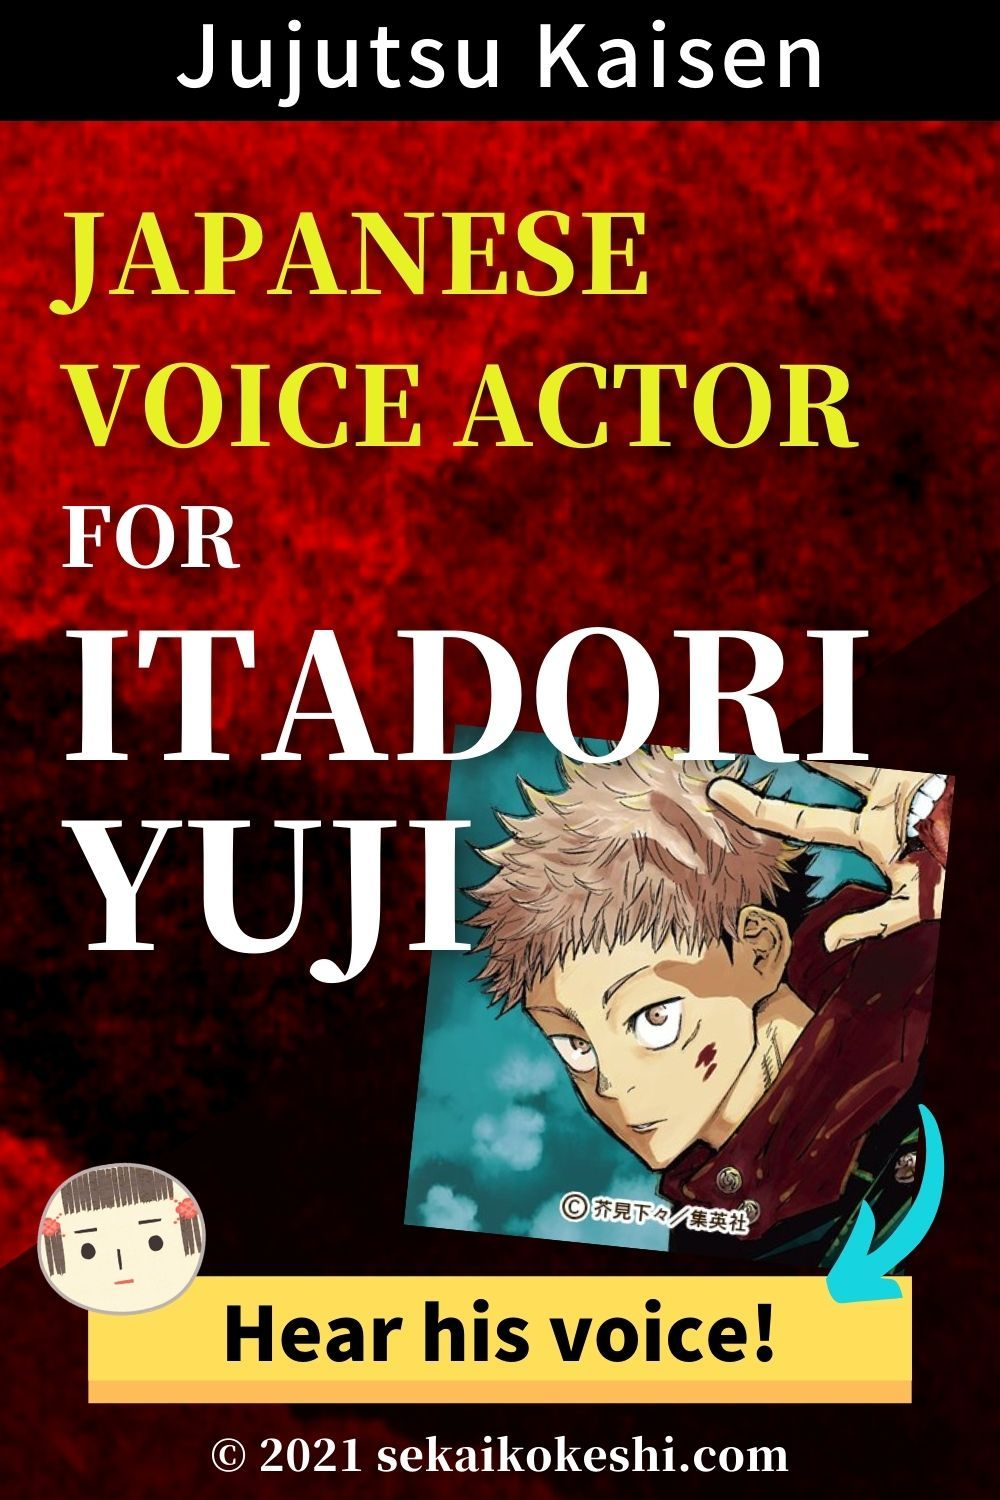 Japanese Voice Actor For Itadori Yuji In Jujutsu Kaisen Anime Click Here For The Voice In 2021 Voice Actor The Voice Actors